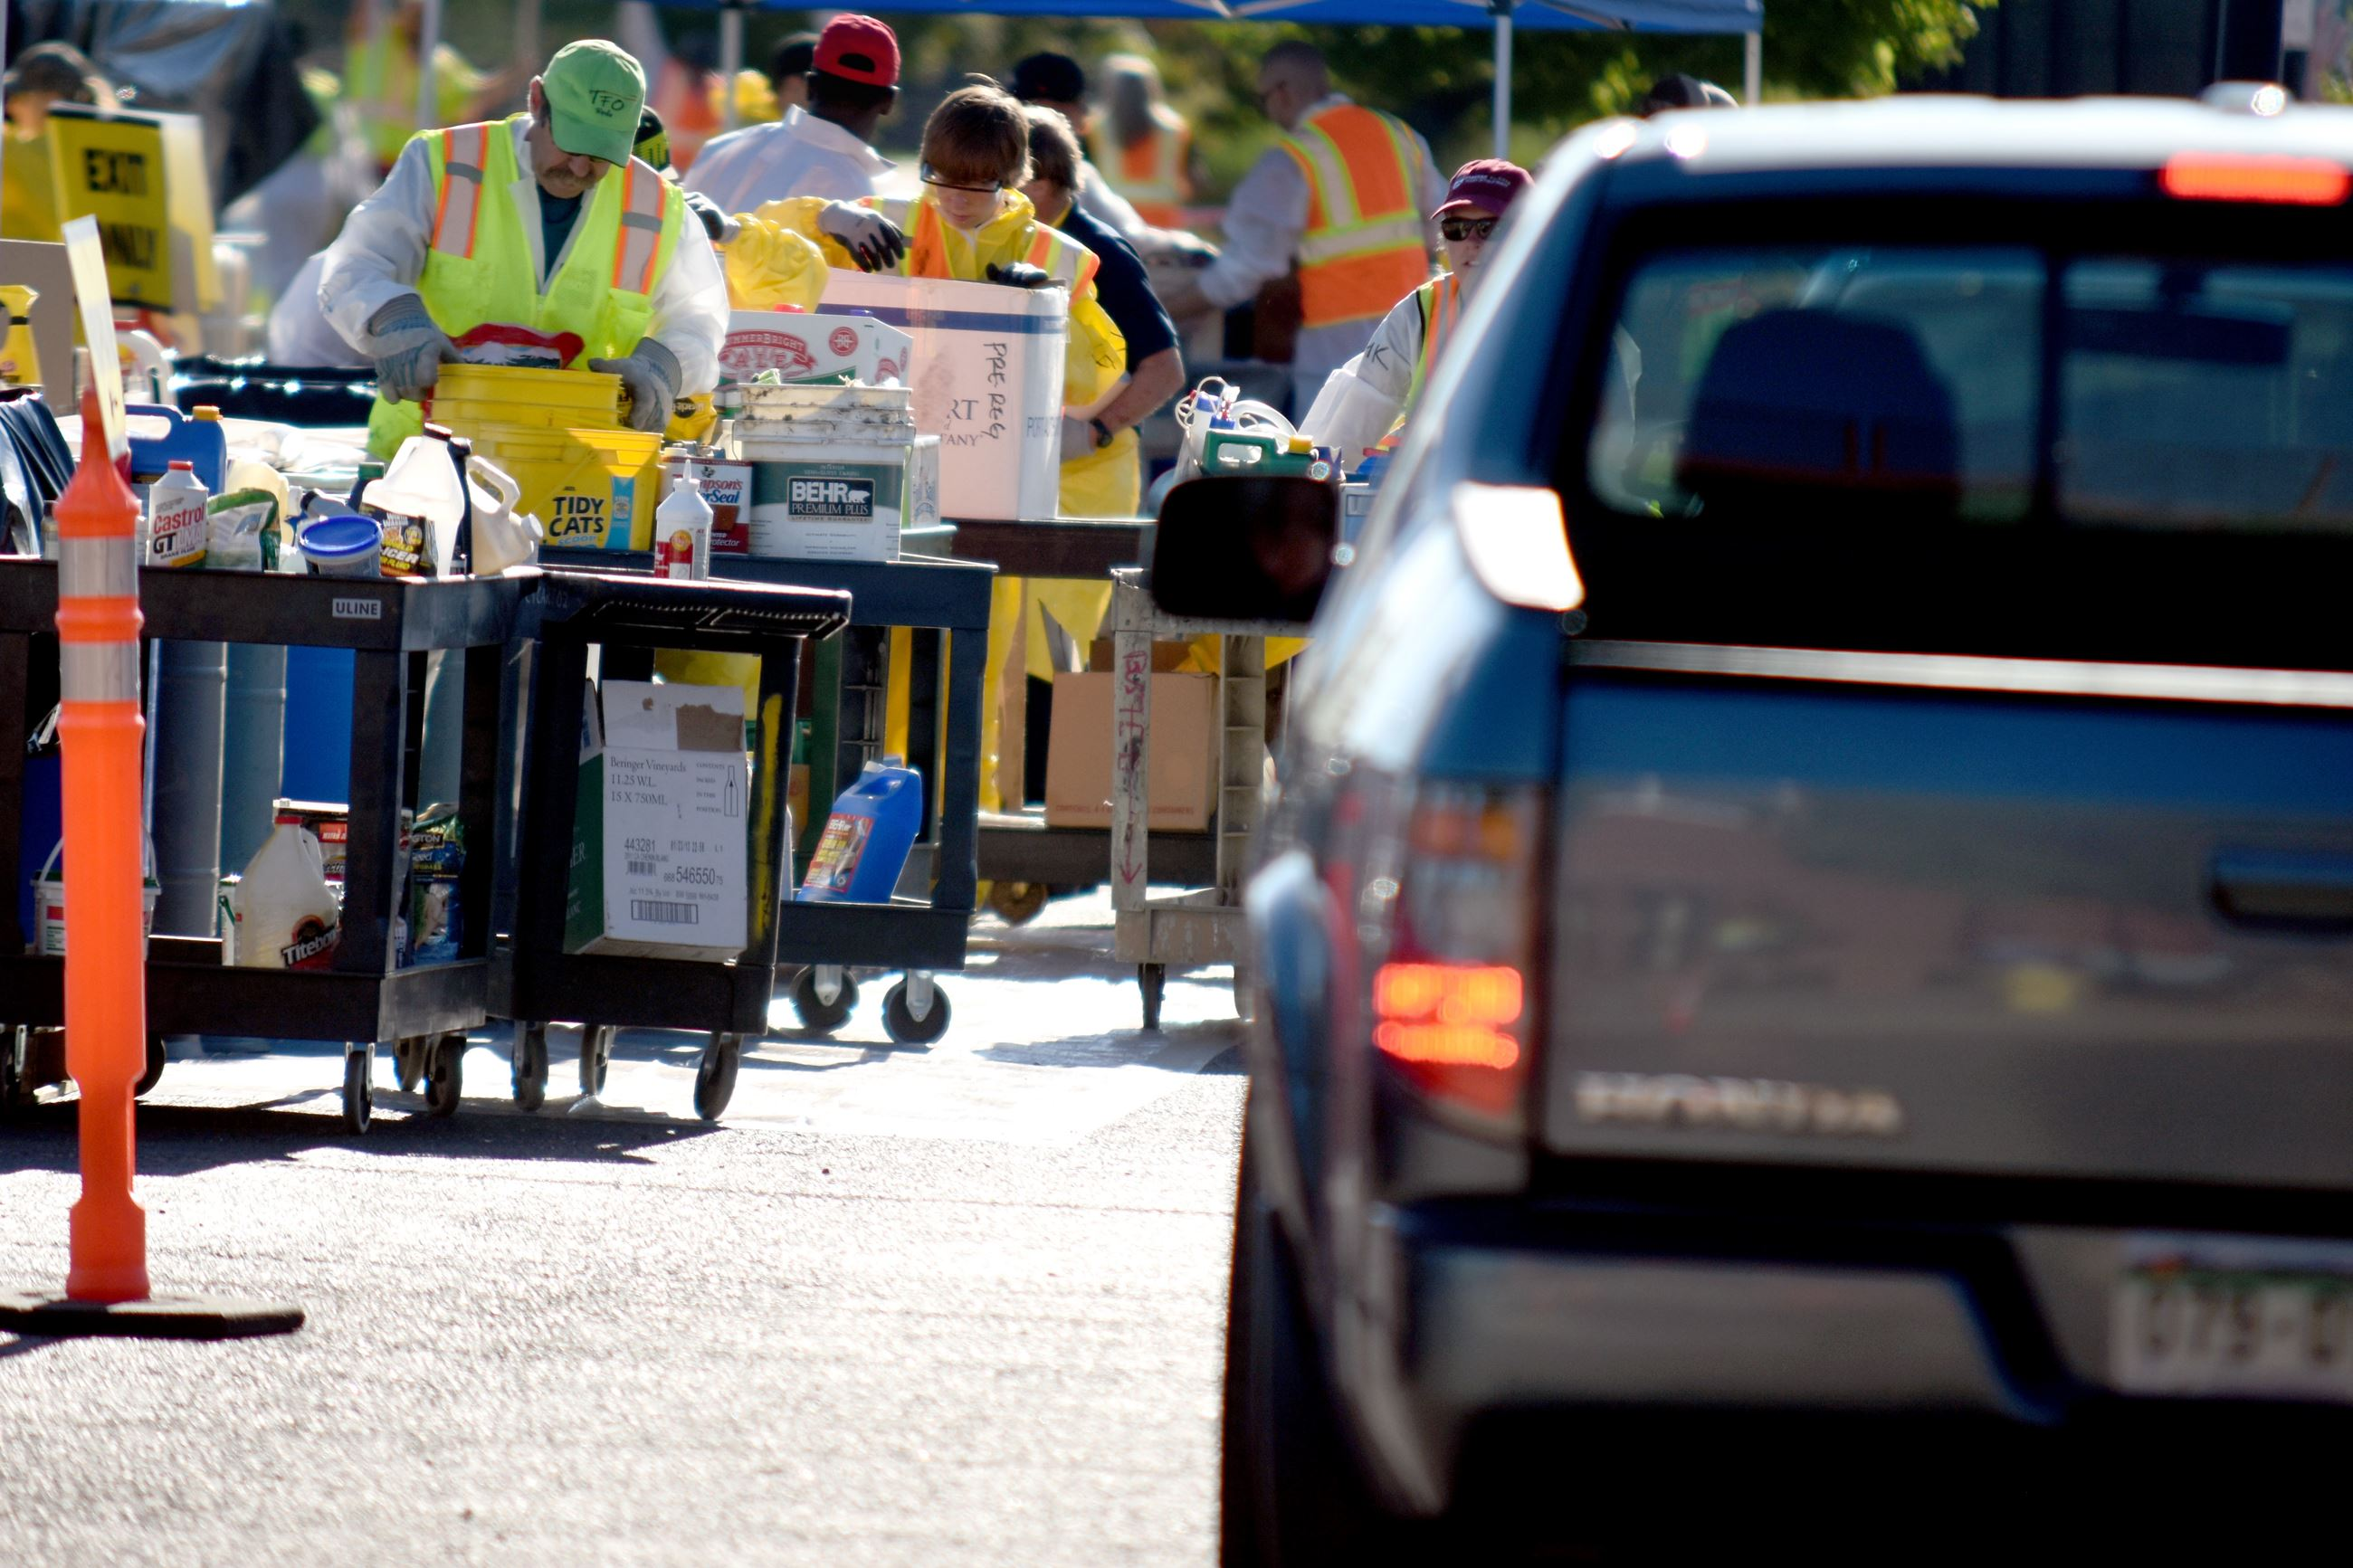 Workers in Neon Safety Vests Sorting Household Hazardous Waste at an Outdoor Collection Event